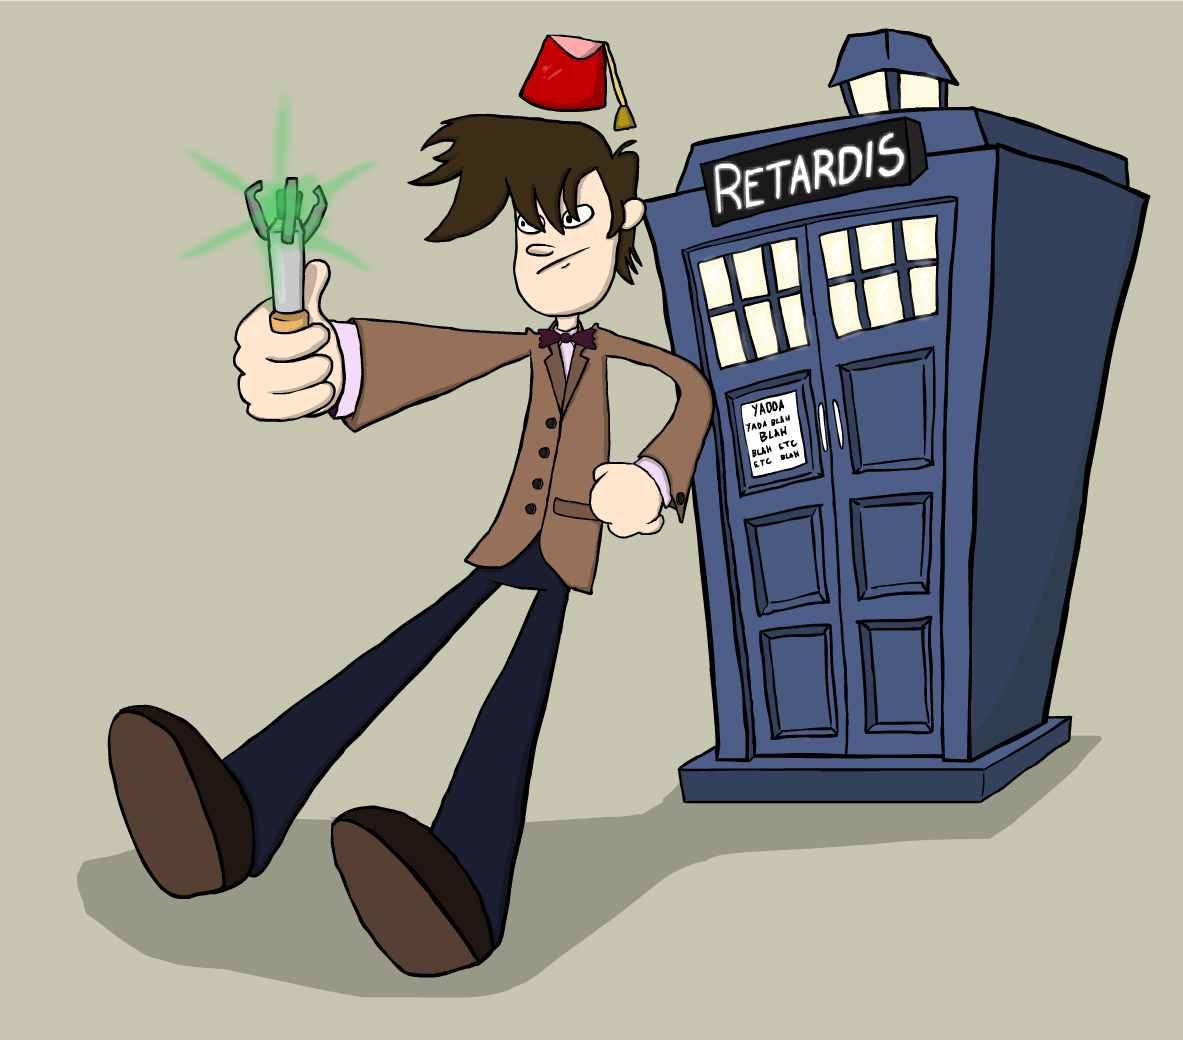 Doctor Derp and the RETARDIS